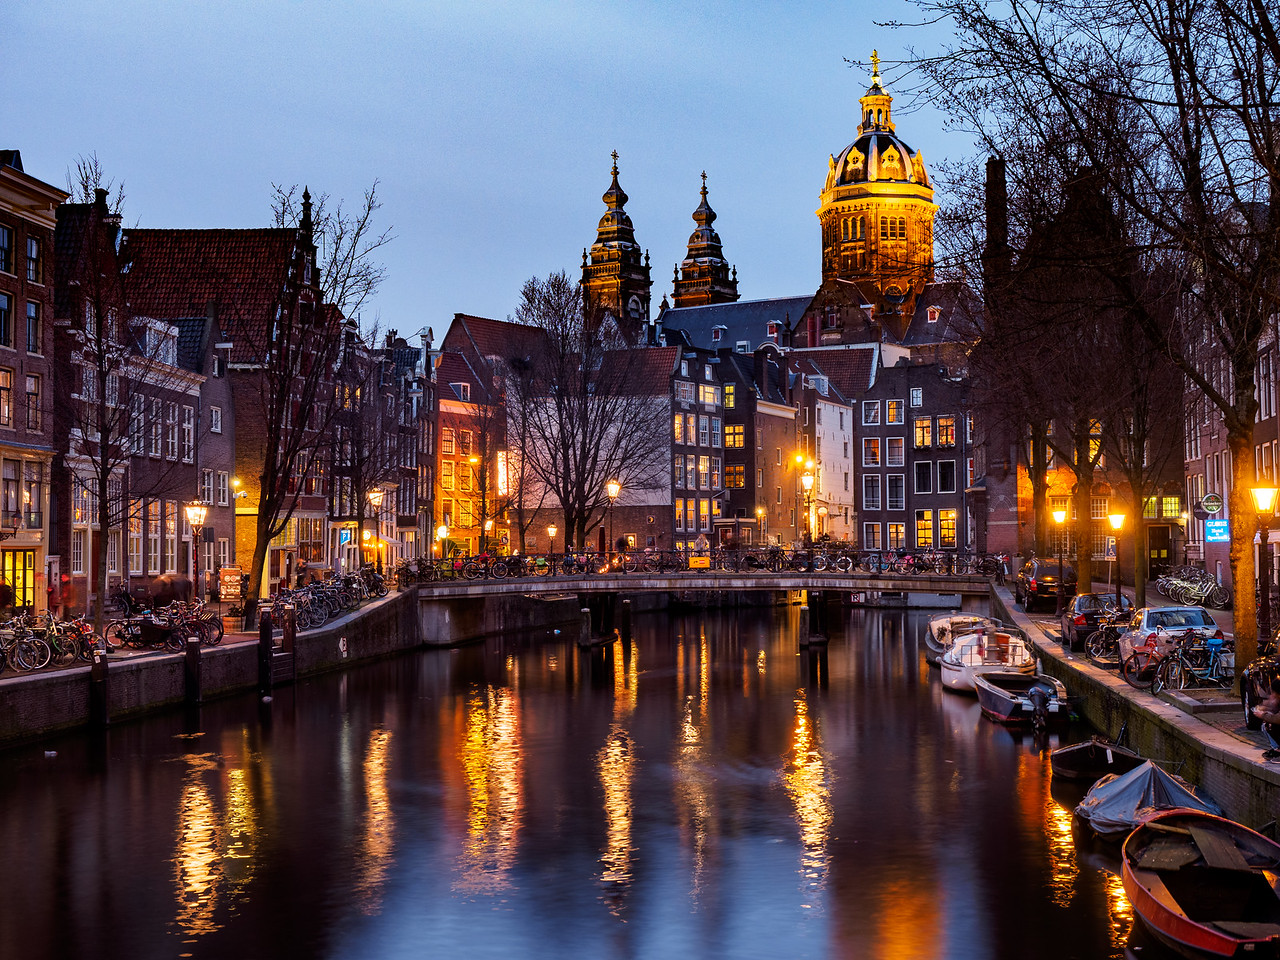 Amsterdam: Red Light district at night